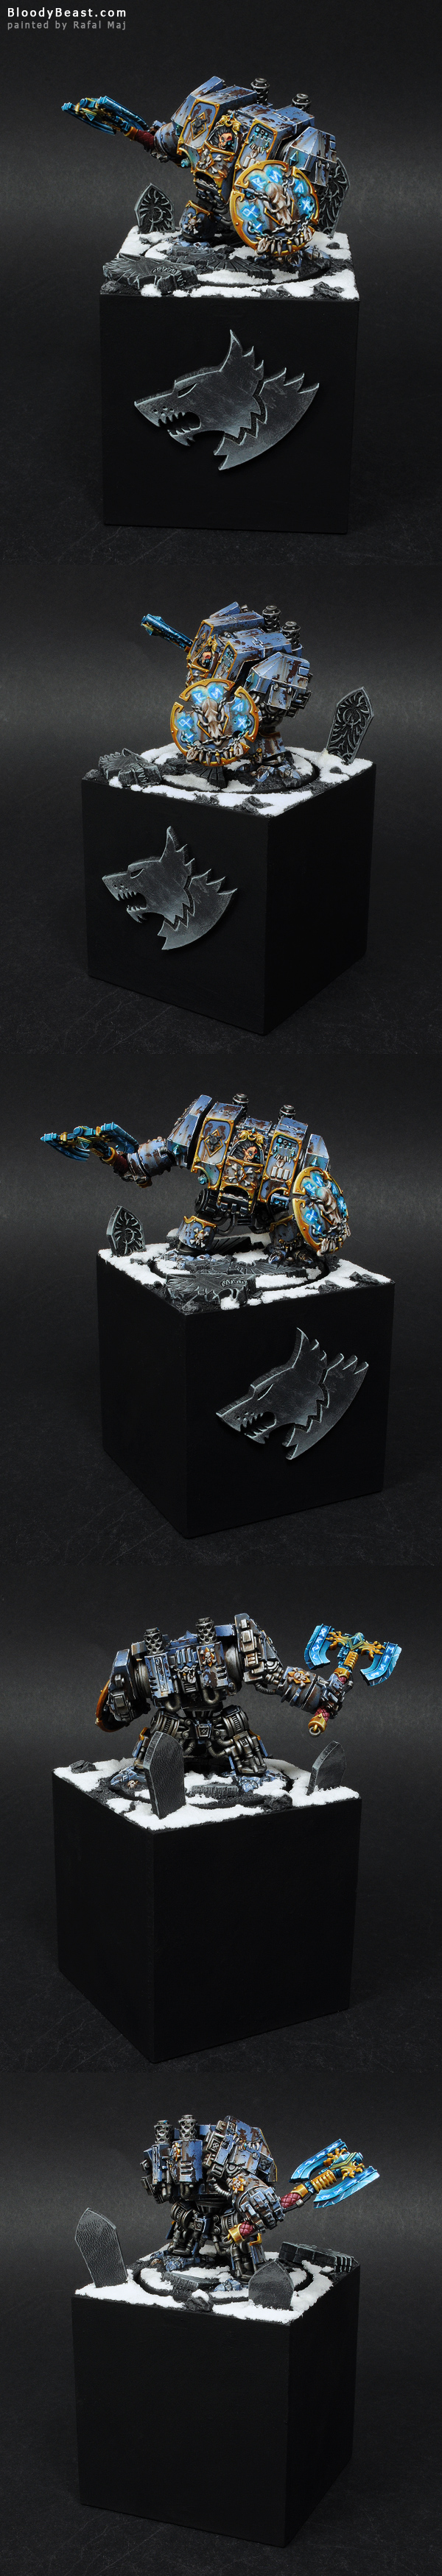 Space Wolves Venerabe Dreadnought on Plinth painted by Rafal Maj (BloodyBeast.com)